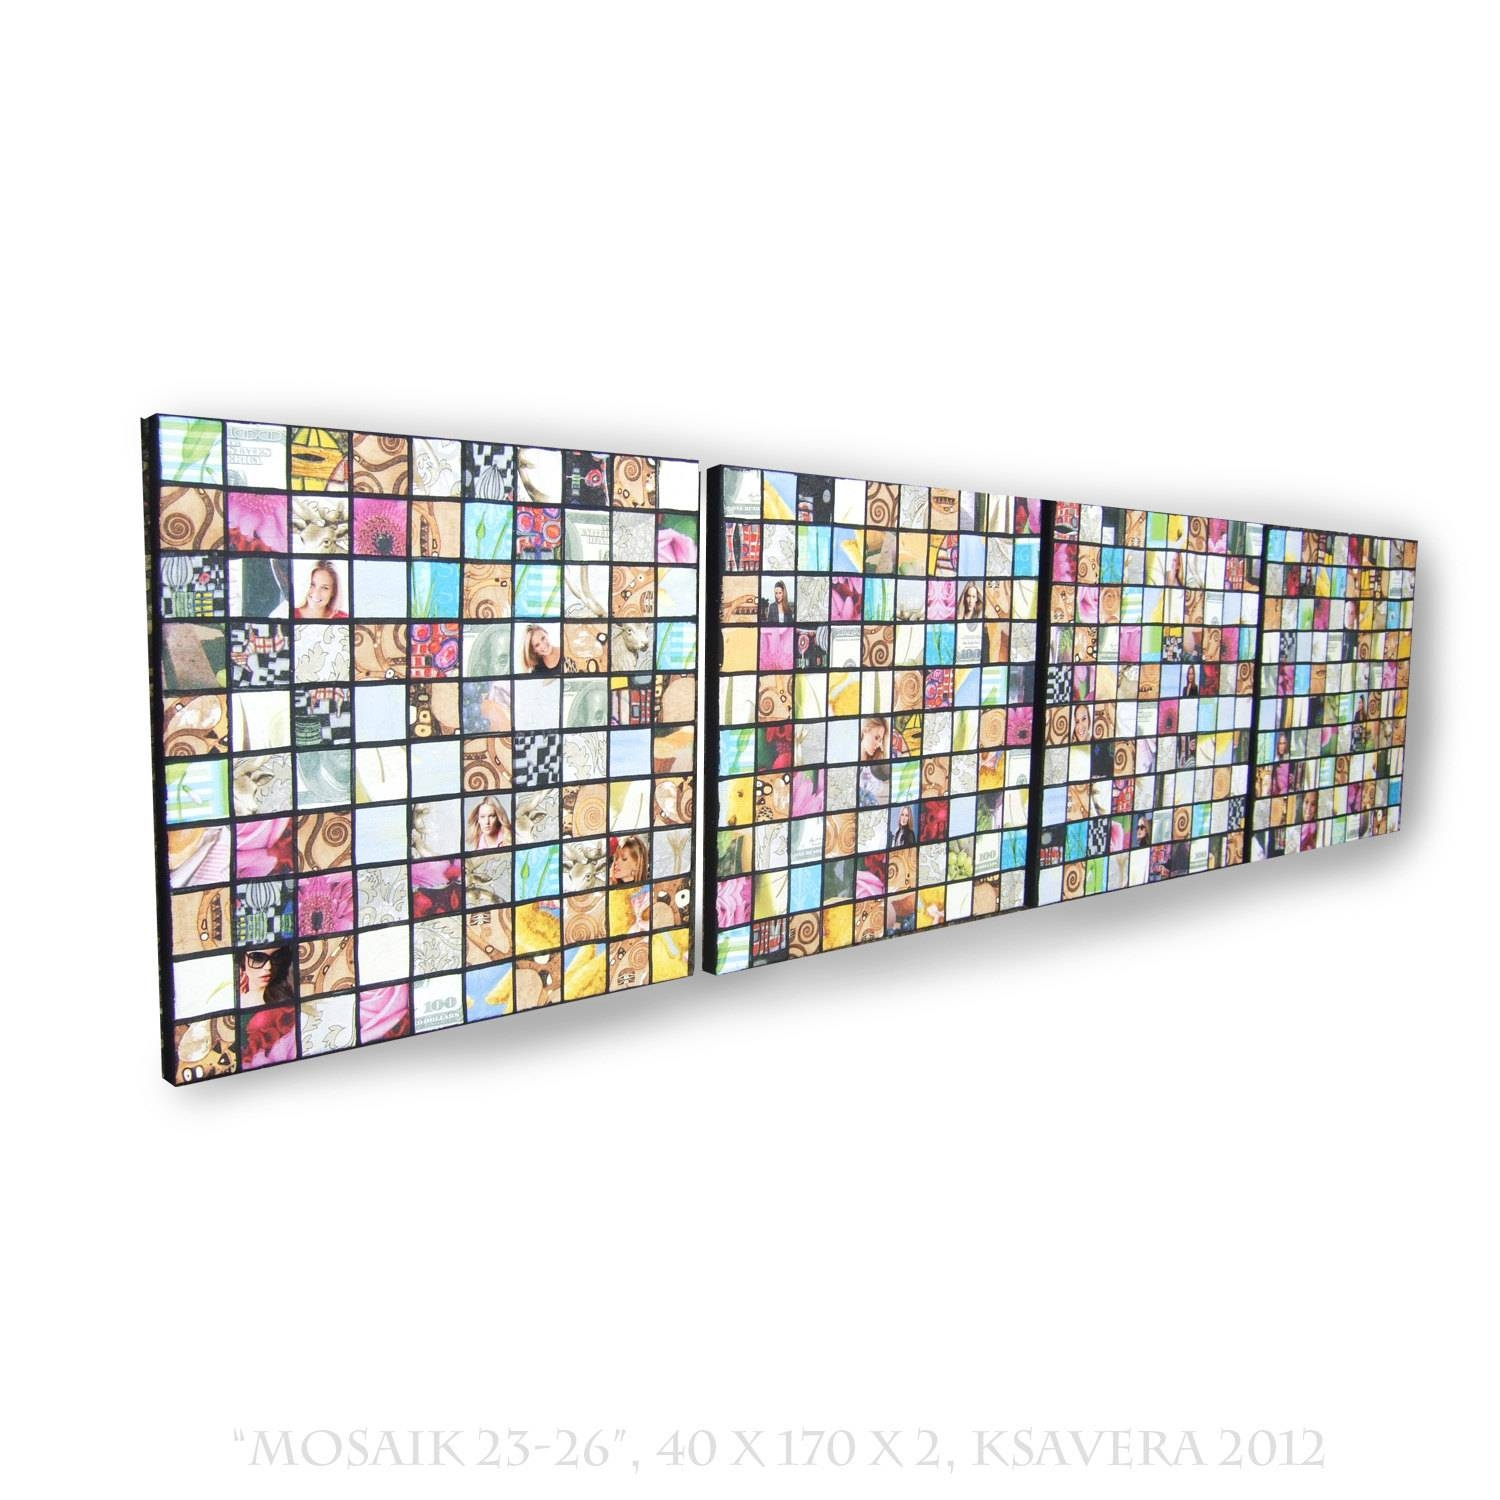 Napkins Decoupage Mosaic On Canvas Long Vertical Abstract Art Pertaining To Latest Long Vertical Wall Art (View 11 of 20)